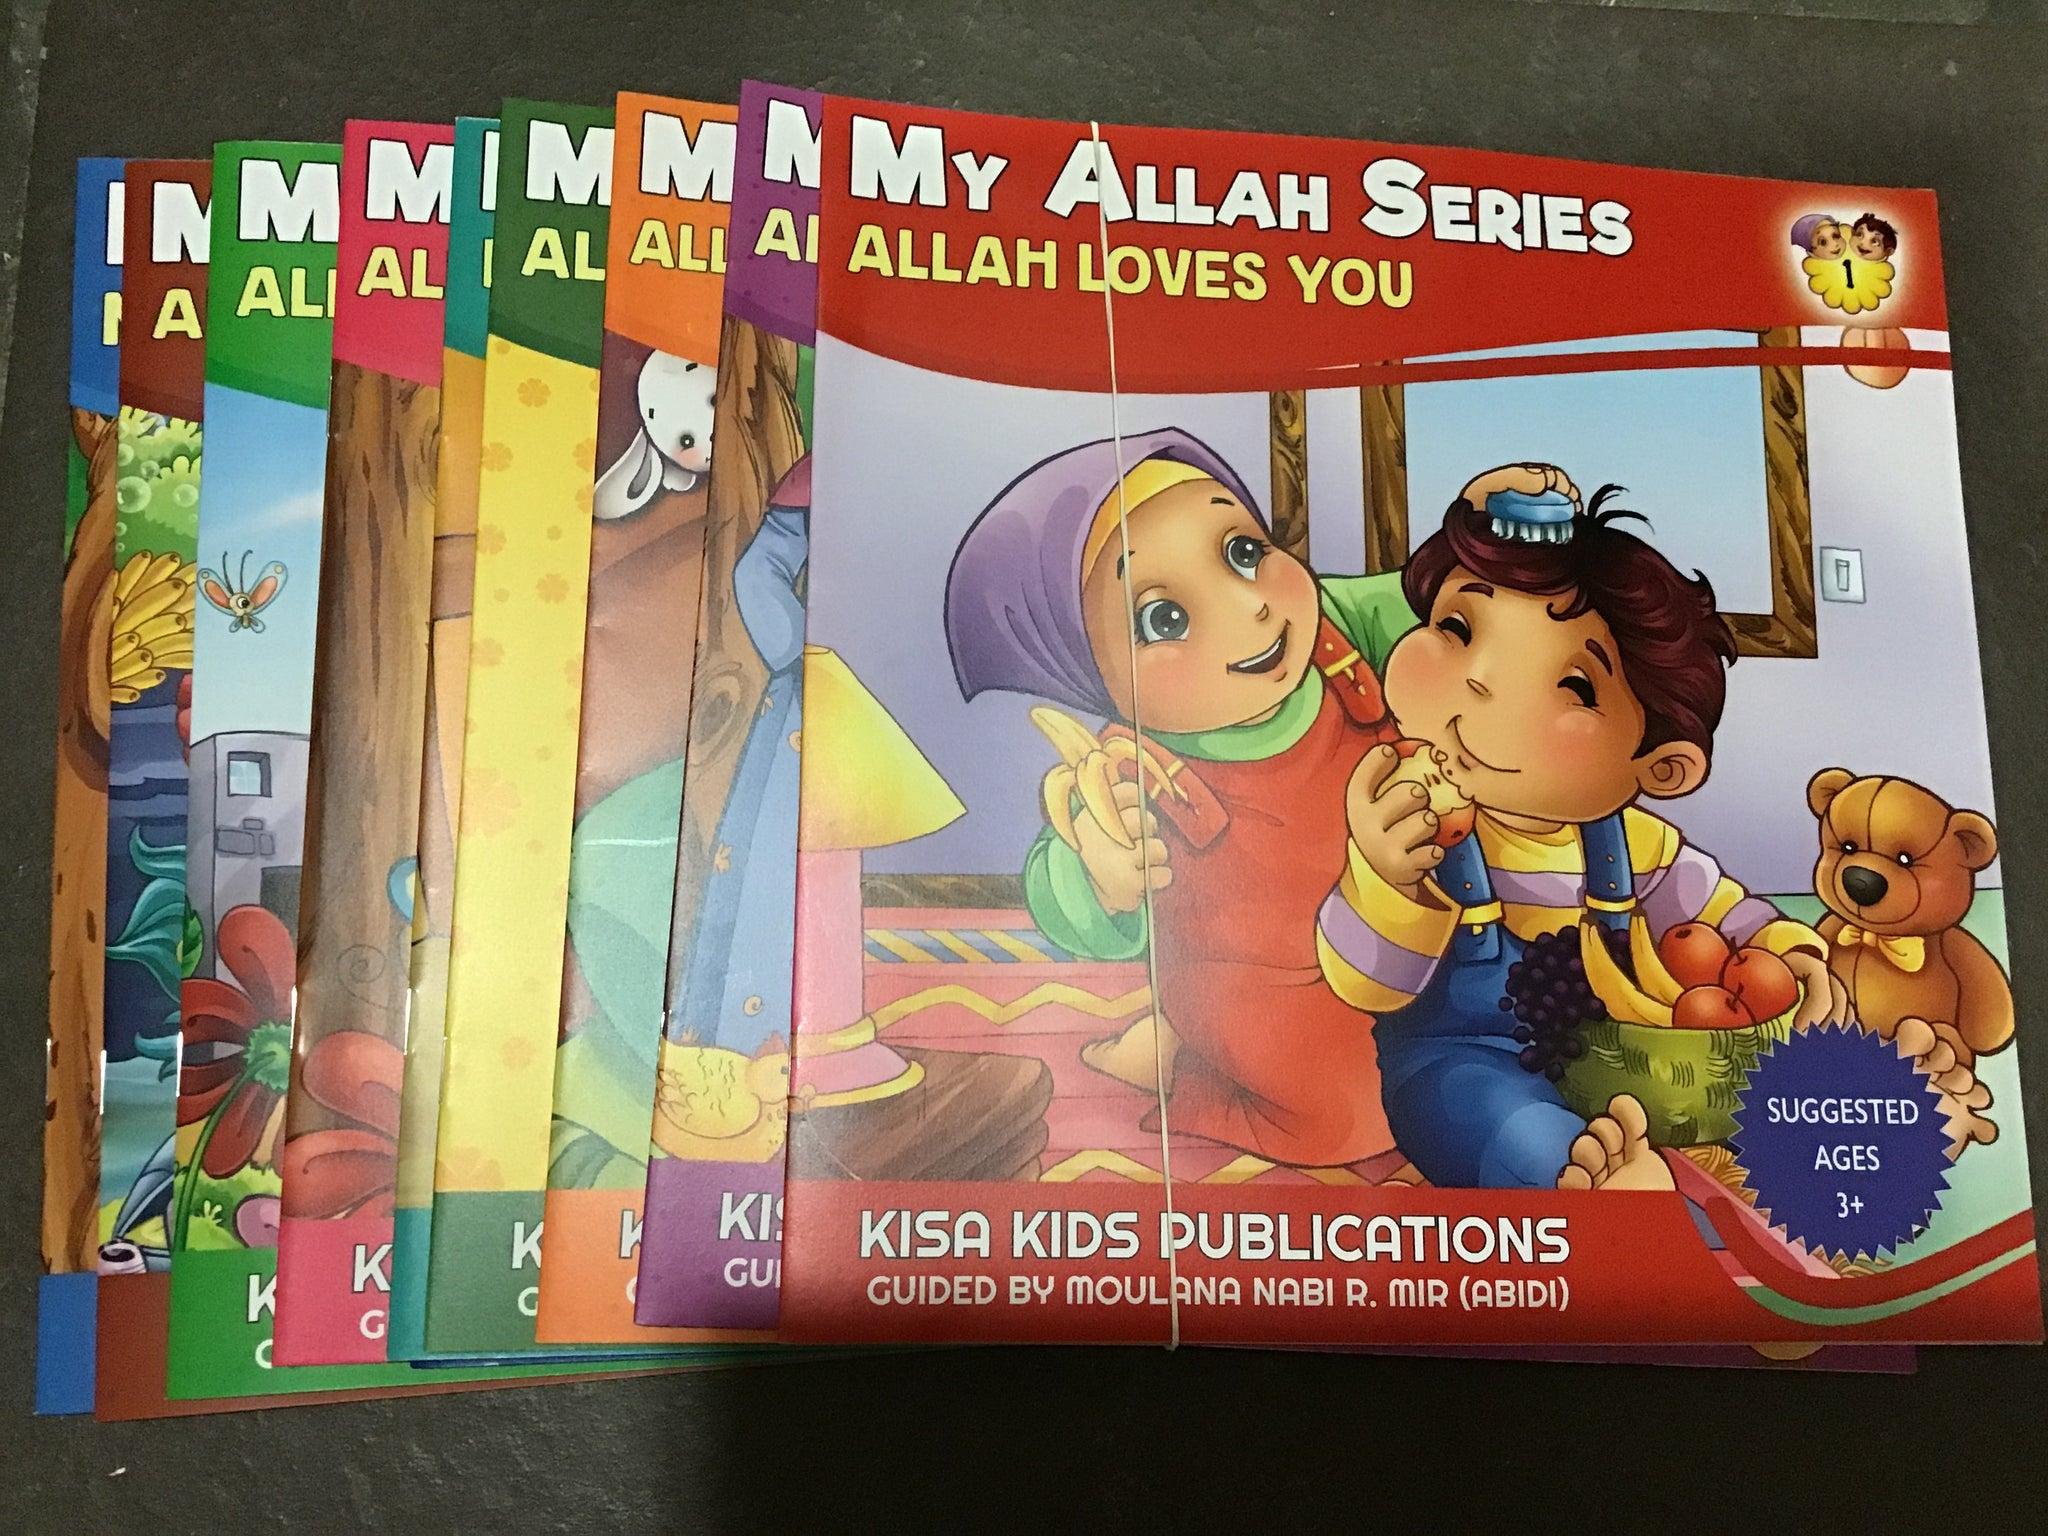 My Allah Series - Kisa Kids